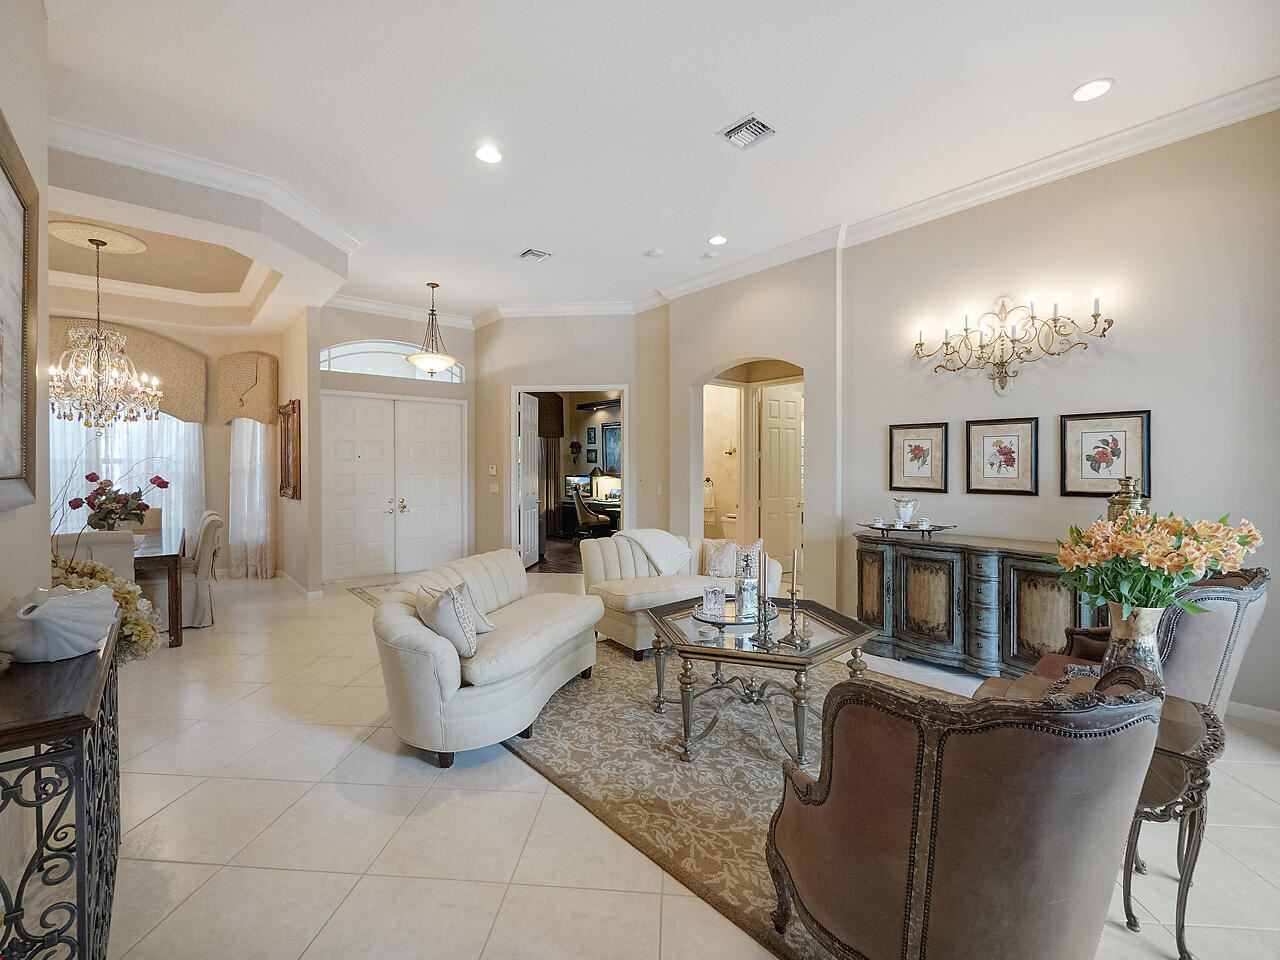 Photo of 113 Chasewood Circle, Palm Beach Gardens, FL 33418 (MLS # RX-10691157)